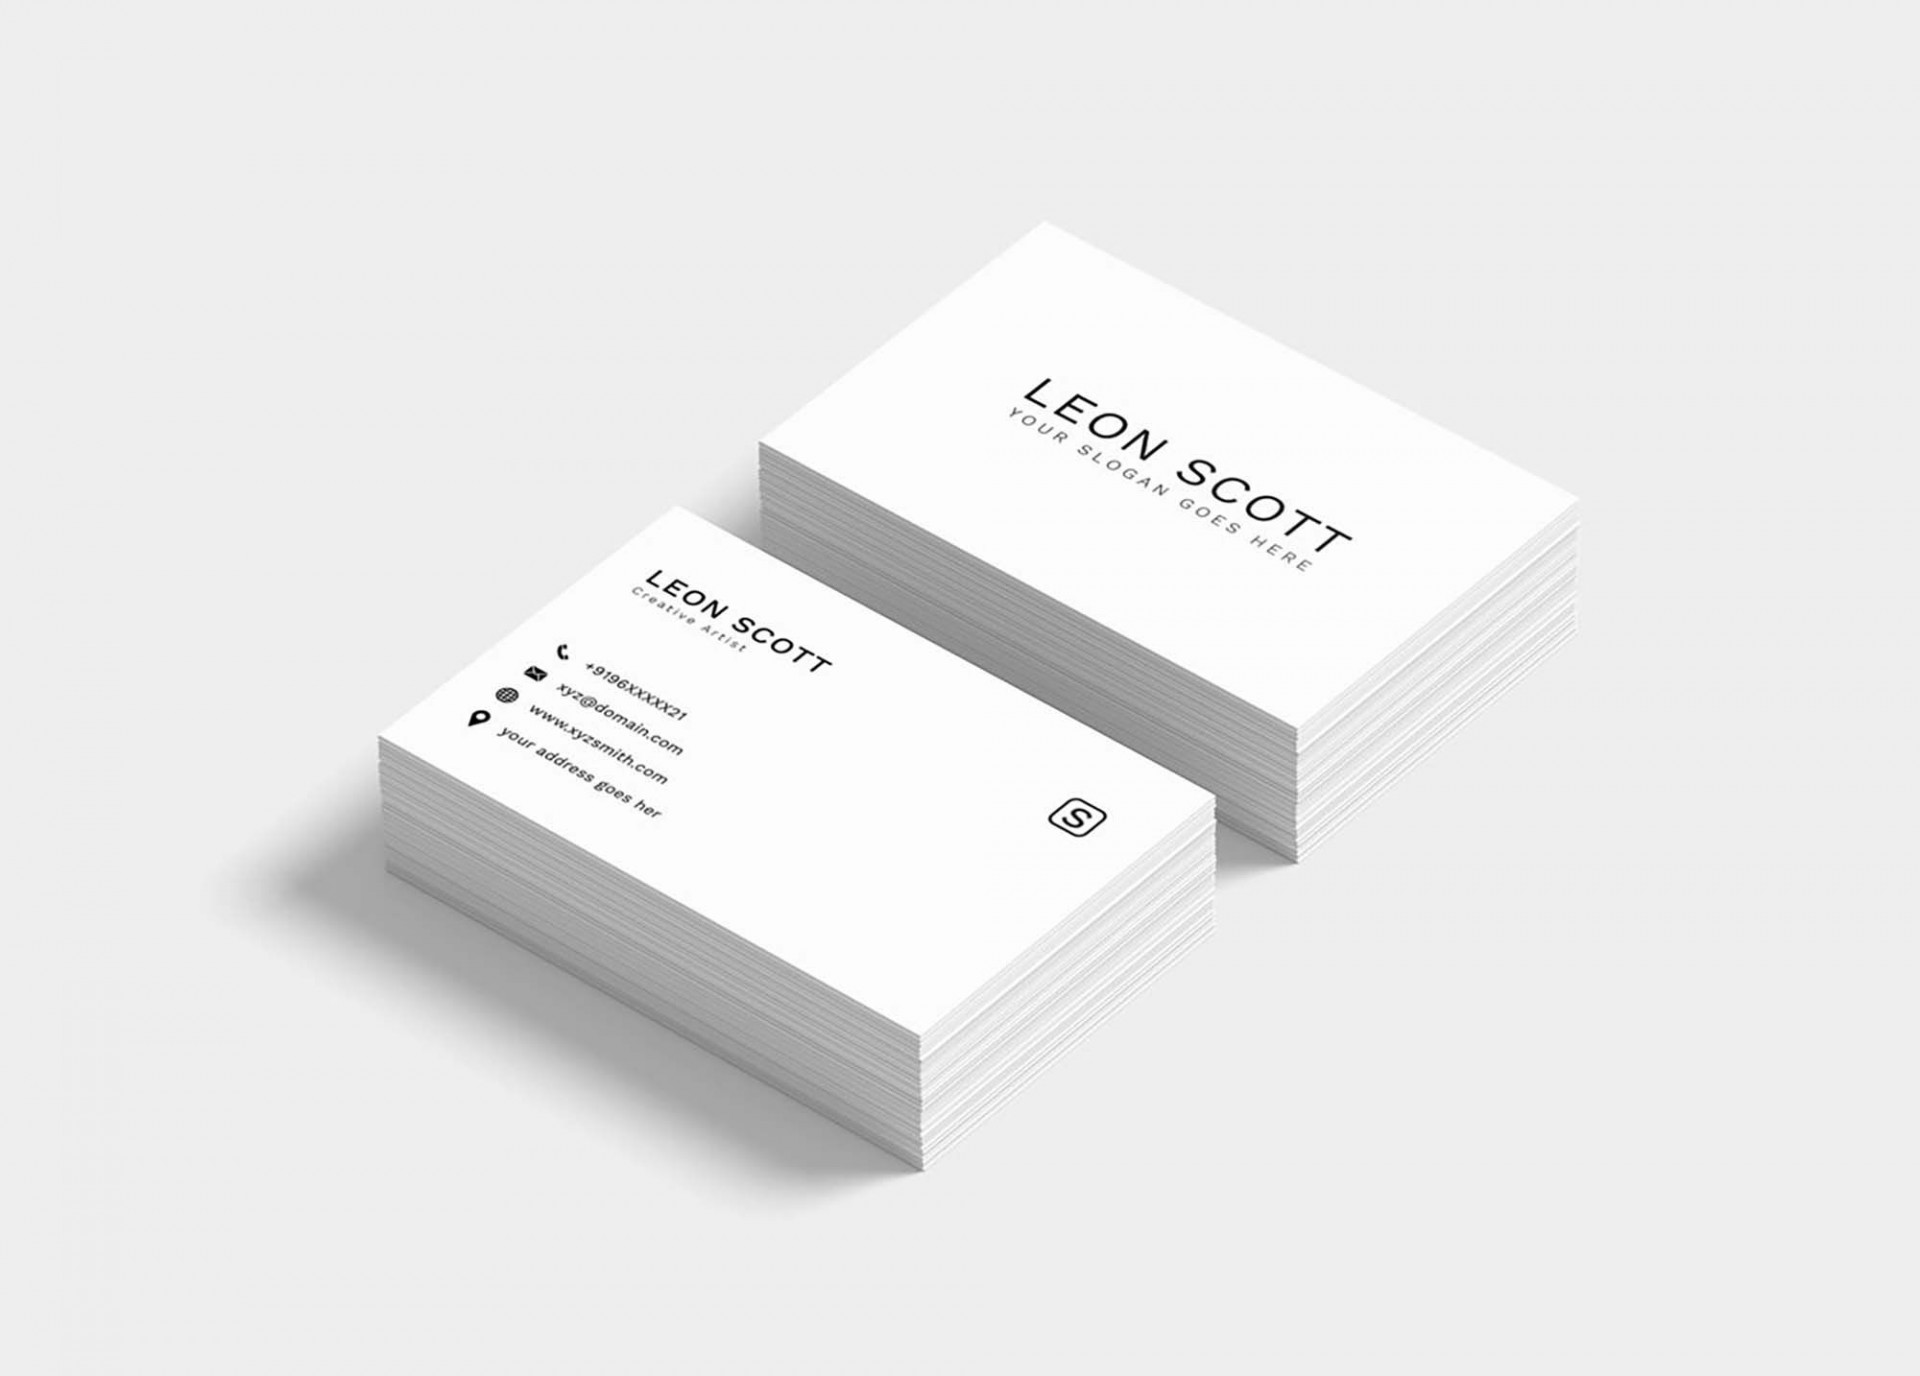 004 Breathtaking Simple Busines Card Template Free Download High Definition  Visiting Design Psd File Minimalist1920